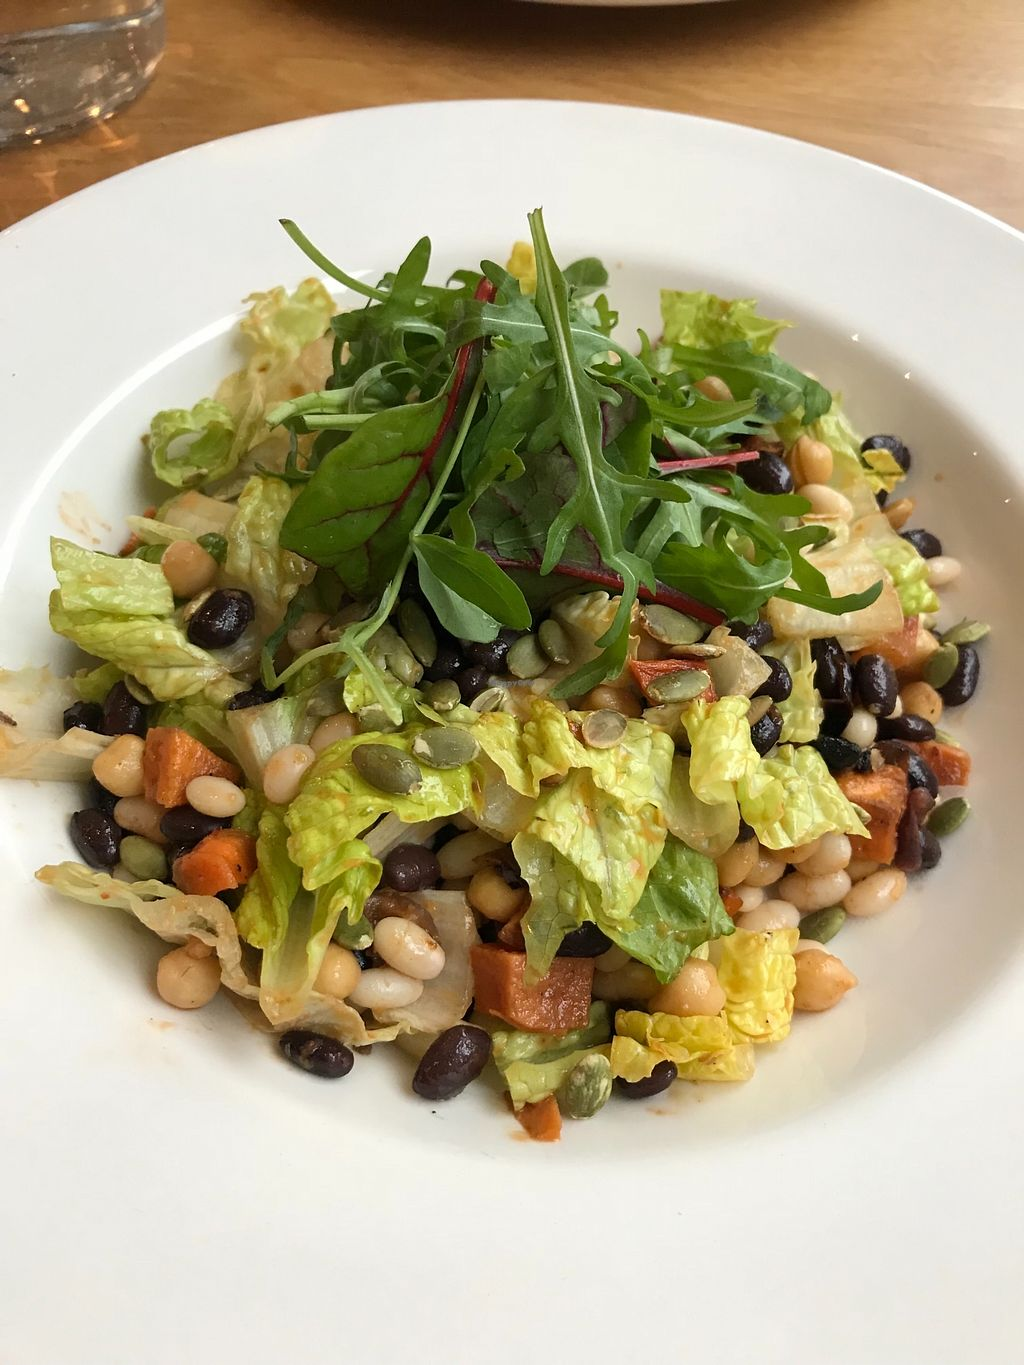 """Photo of Loudons Cafe and Bakery  by <a href=""""/members/profile/AshleighC"""">AshleighC</a> <br/>Loudons roast veg and mixed bean salad (specifically asked for it to be made vegan, if not) <br/> February 5, 2018  - <a href='/contact/abuse/image/105784/355395'>Report</a>"""